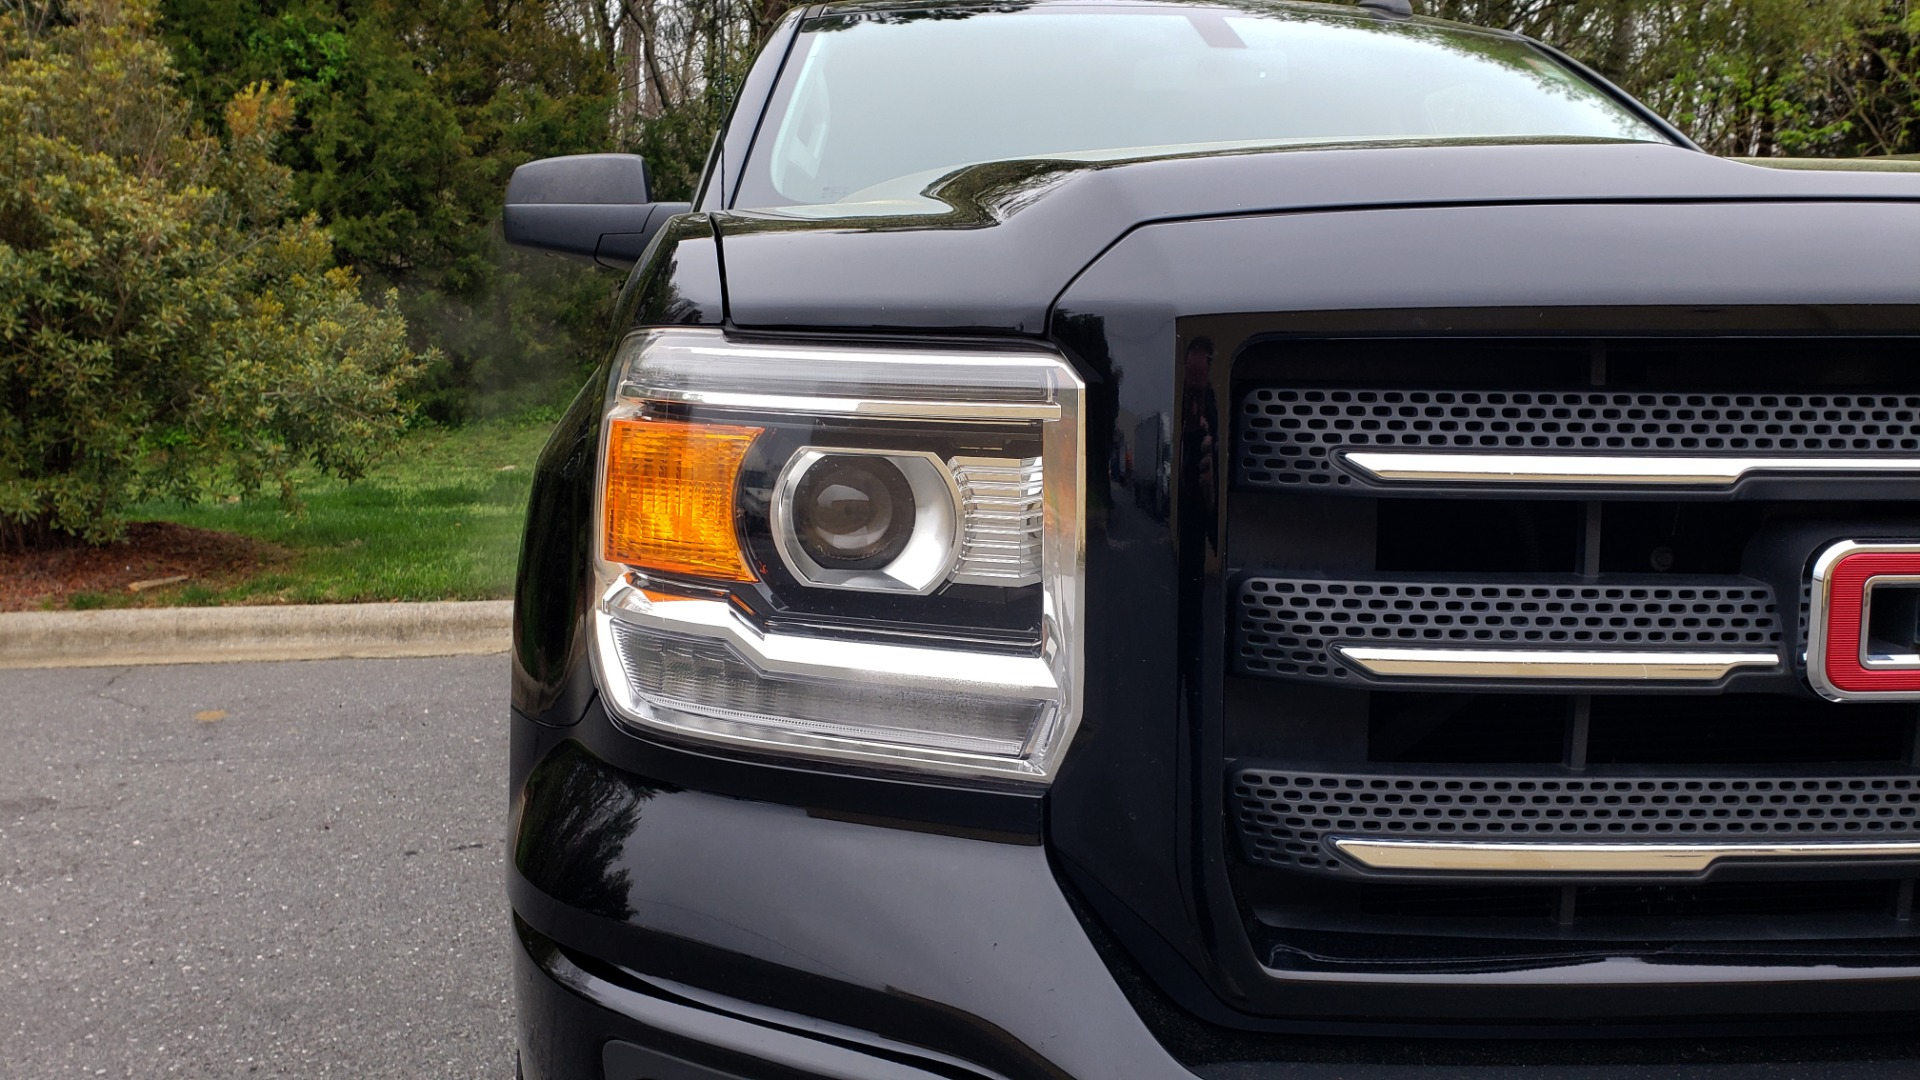 Used 2015 GMC SIERRA 1500 SLT 4WD CREW CAB / 6.2L V8 / NAV / BOSE / REARVIEW for sale Sold at Formula Imports in Charlotte NC 28227 19